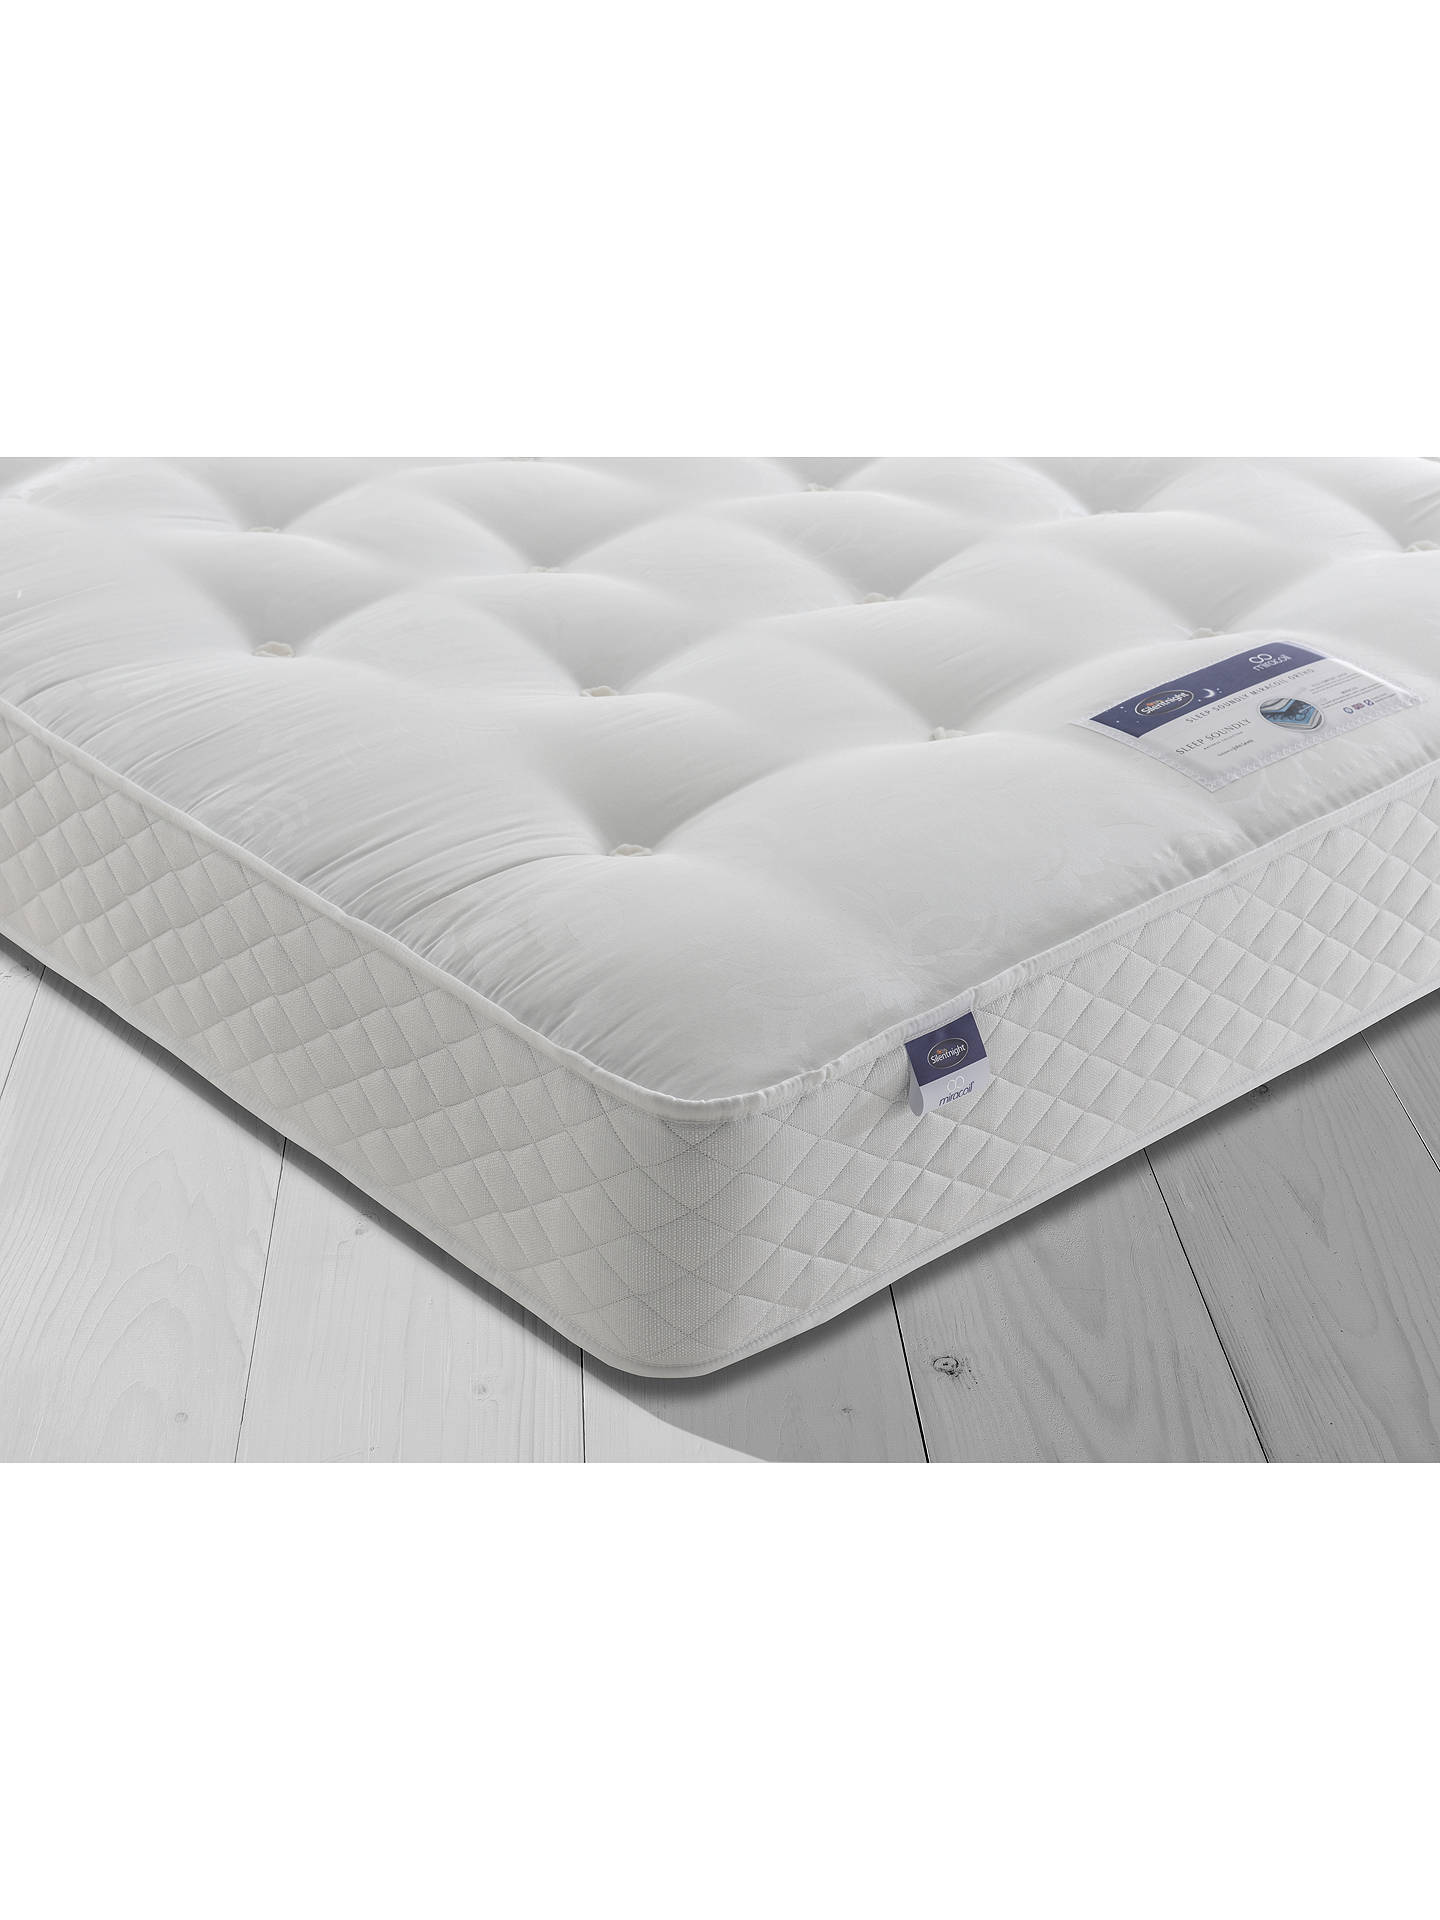 BuySilentnight Sleep Soundly Miracoil Ortho Divan Base and Mattress Set, FSC-Certified (Picea Abies, Chipboard), Firm, Double Online at johnlewis.com